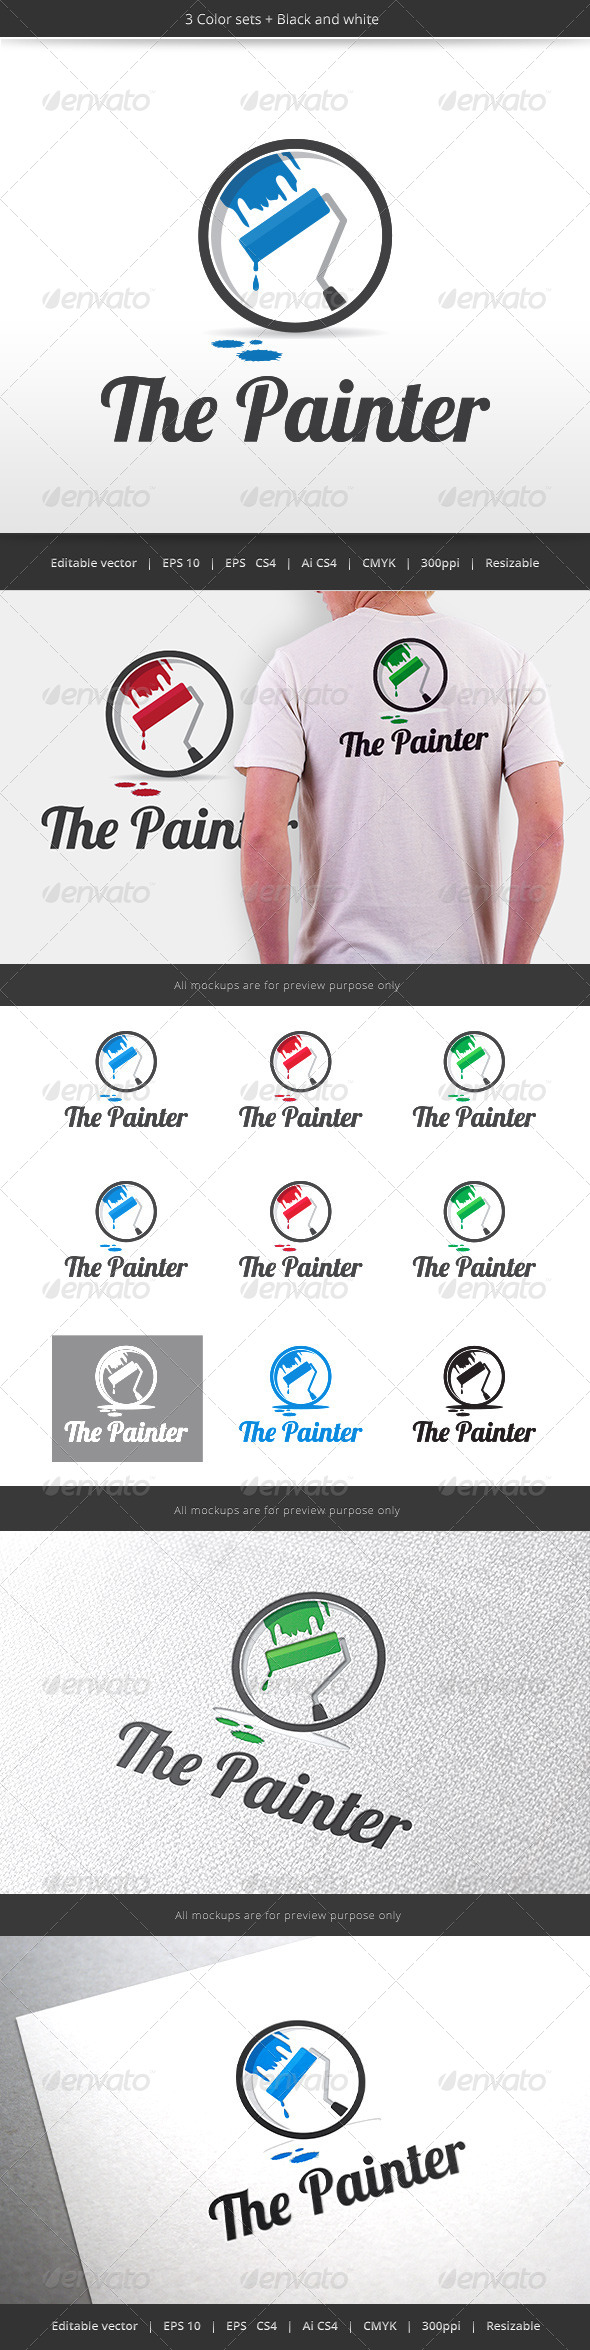 GraphicRiver The Painter Logo 5820543